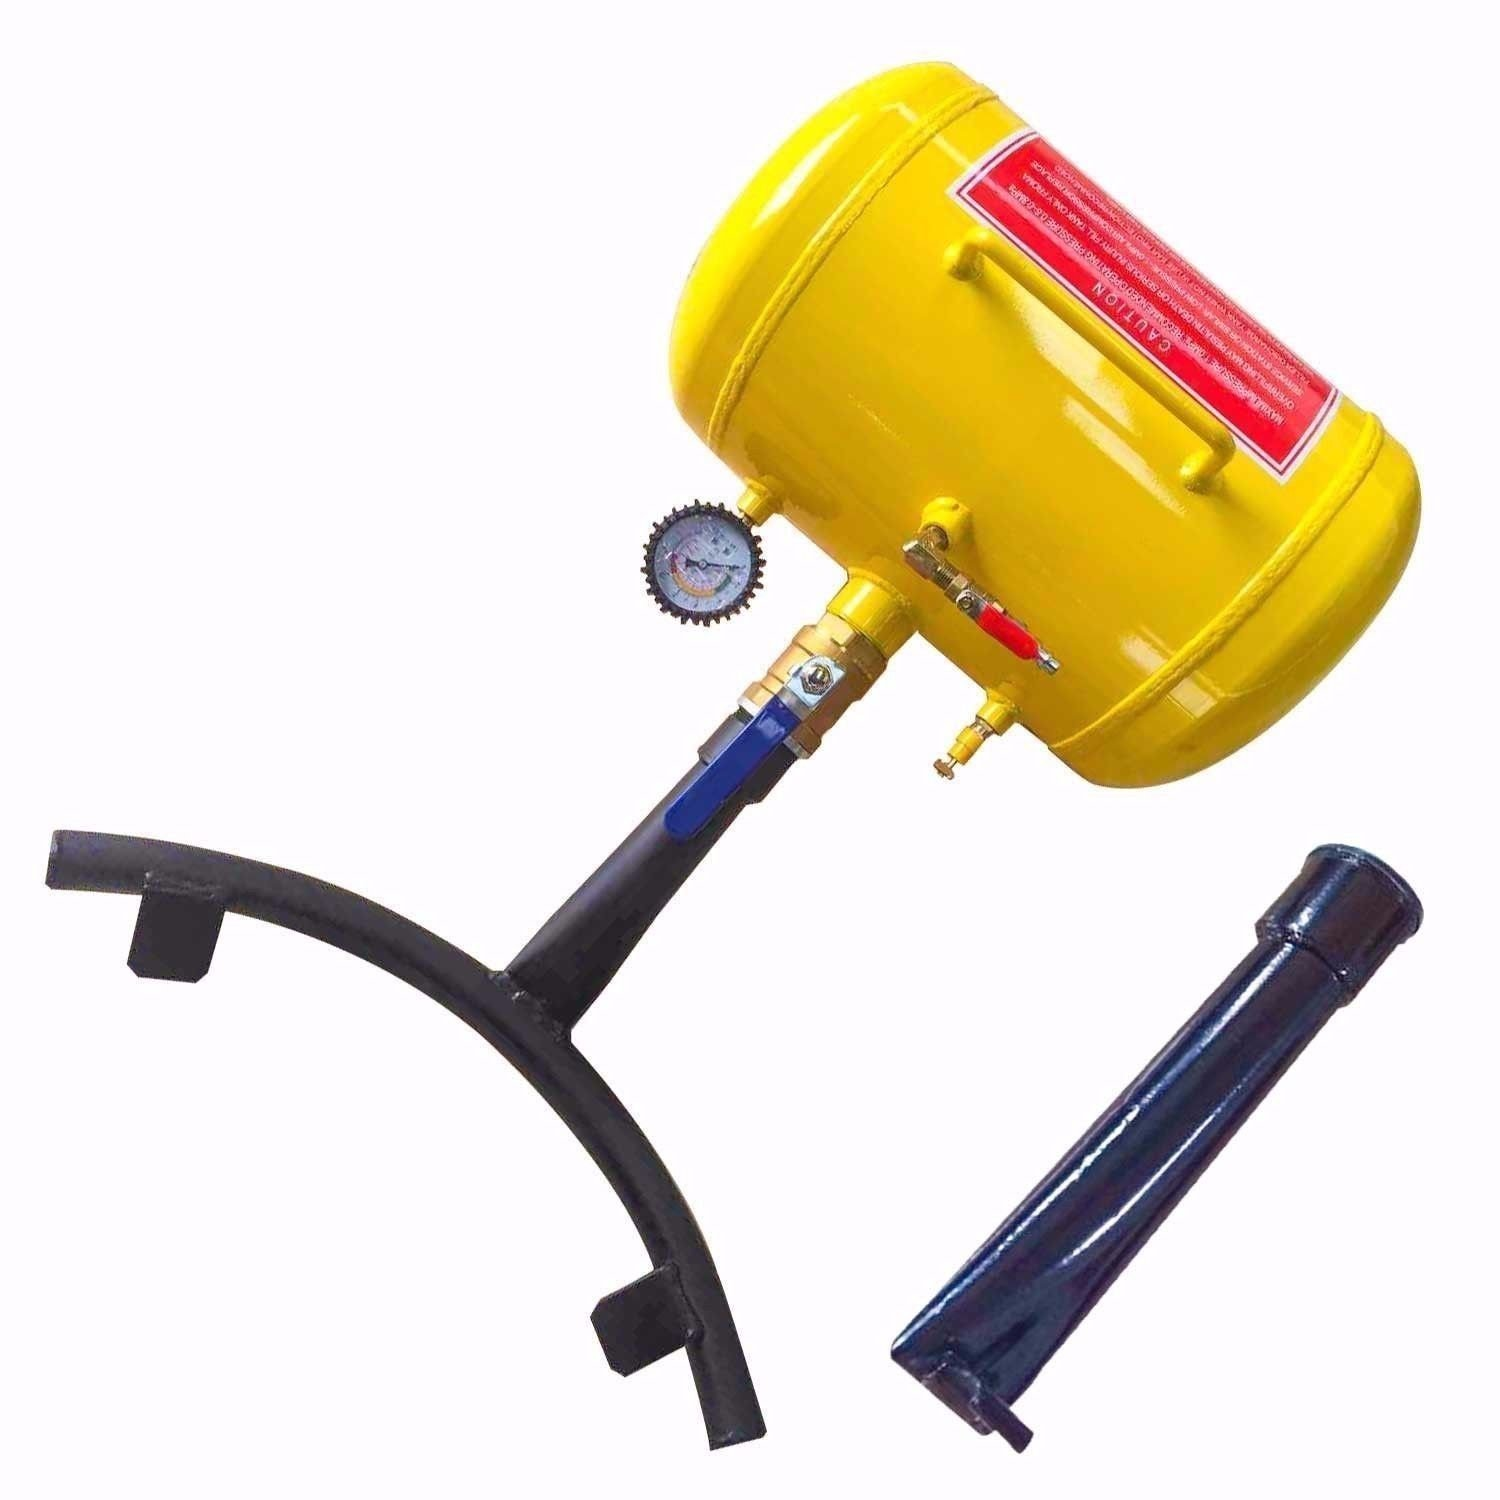 10 Gallon Air Tire Bead Seater Blaster Tool Seating Inflator Tractor Truck ATV 145psi